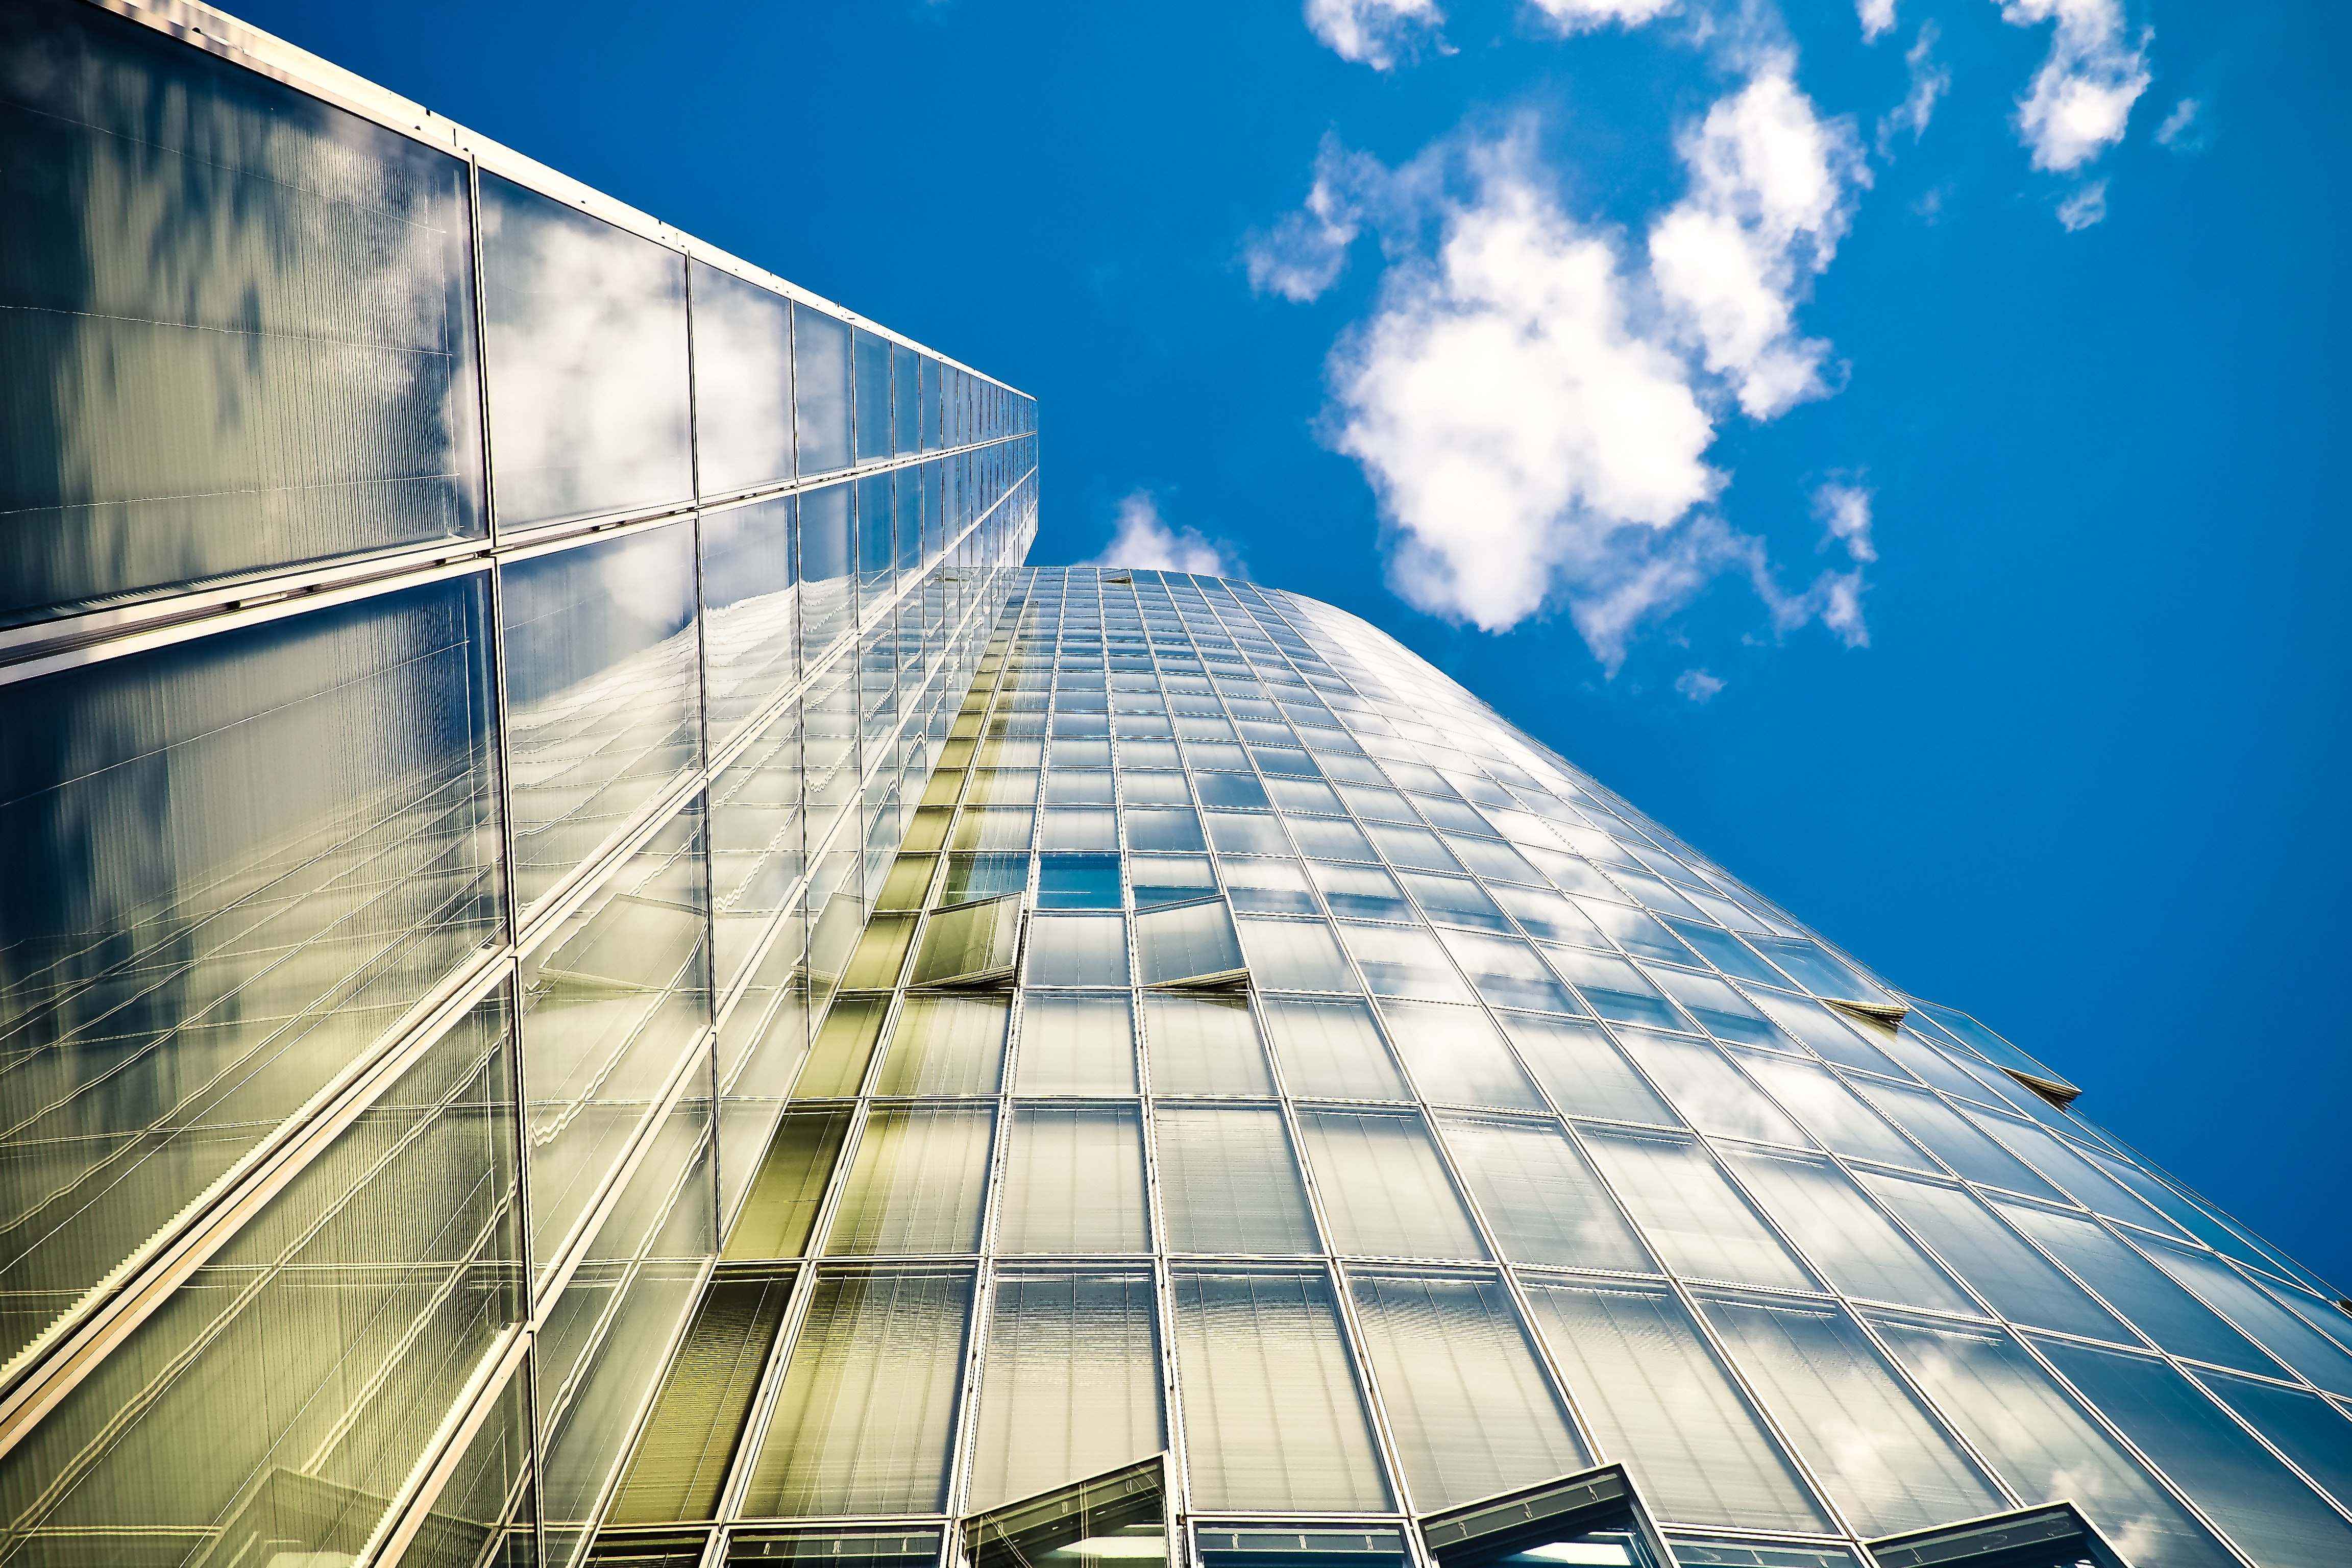 Worm's Eyeview Photography of Building, Office, Windows, Urban, Tall, HQ Photo